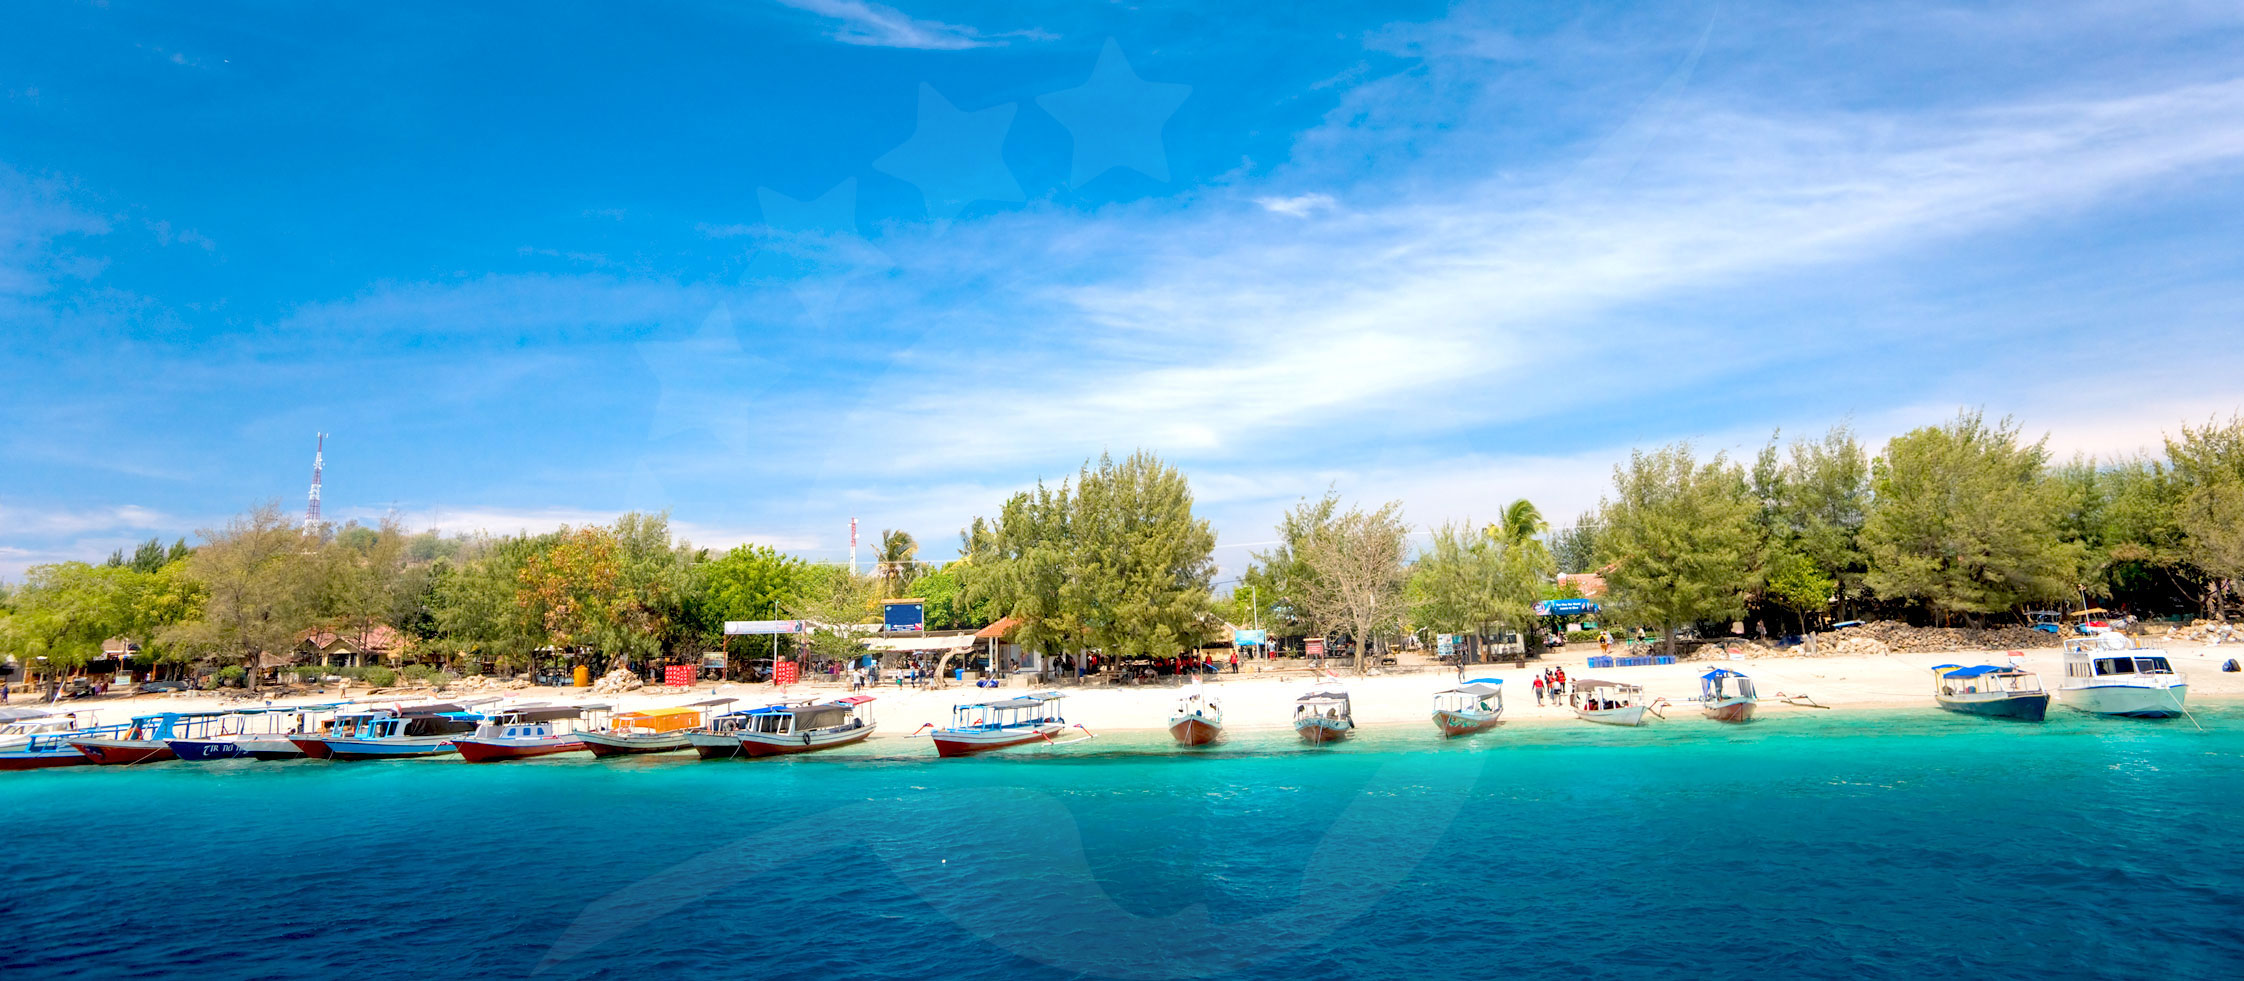 How To Get To Gili Islands From Bali Gili Islands Travel